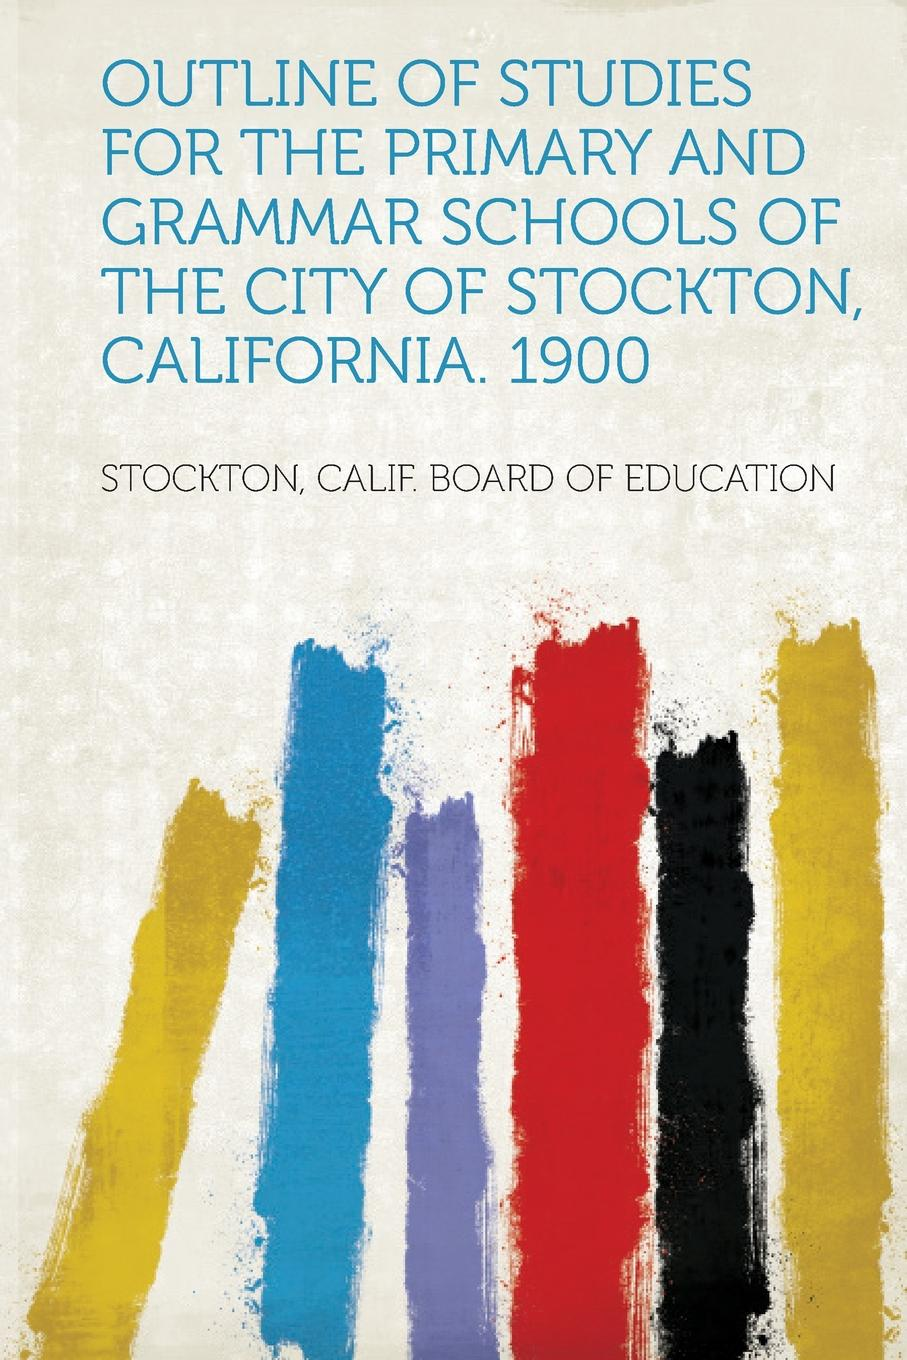 Outline of Studies for the Primary and Grammar Schools of the City of Stockton, California. 1900